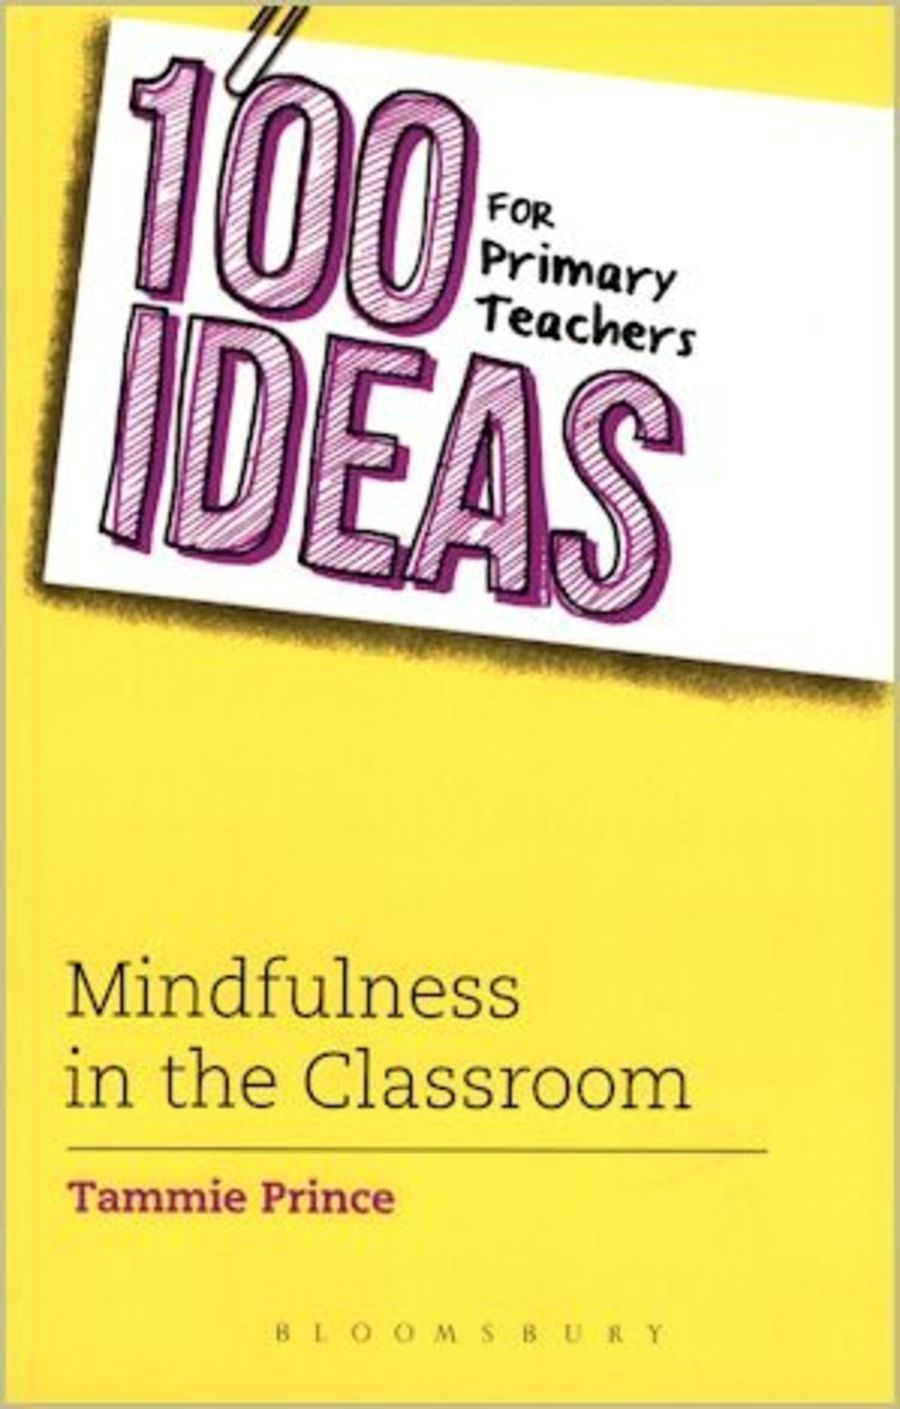 100 Ideas for Primary Teachers on Mindfulness in the Classroom